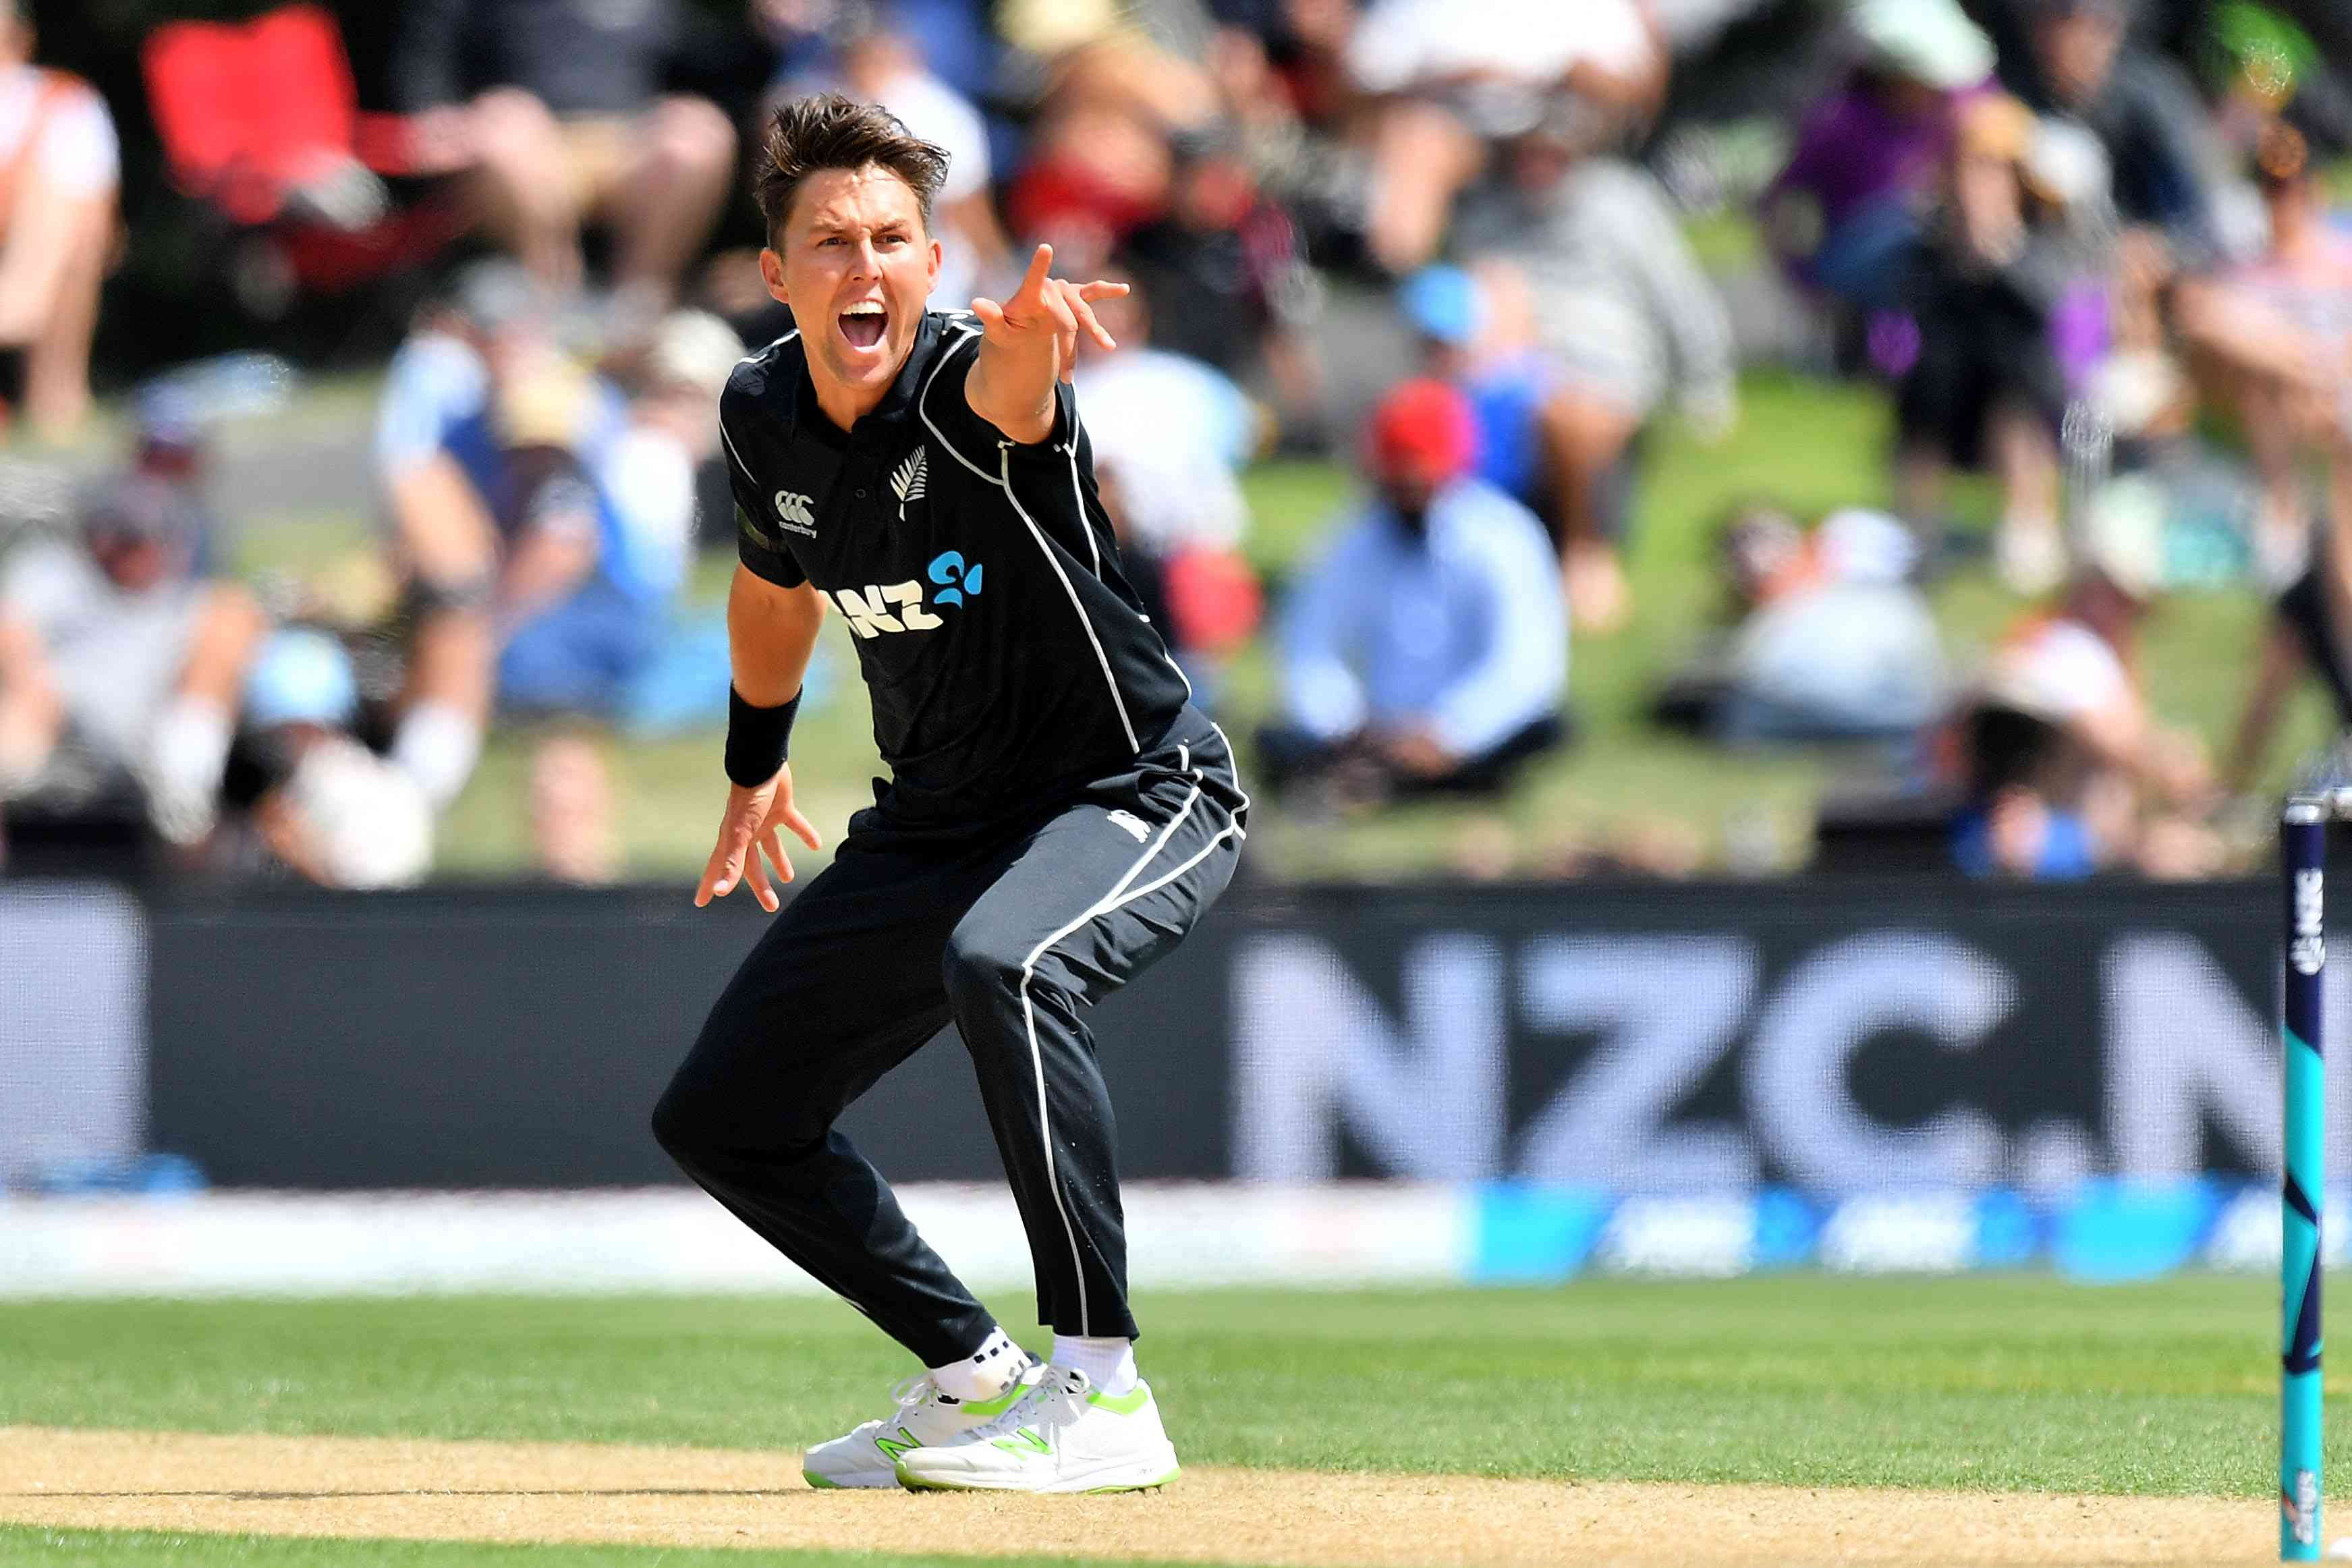 Trent Boult was on song in Hamilton / Image: AFP